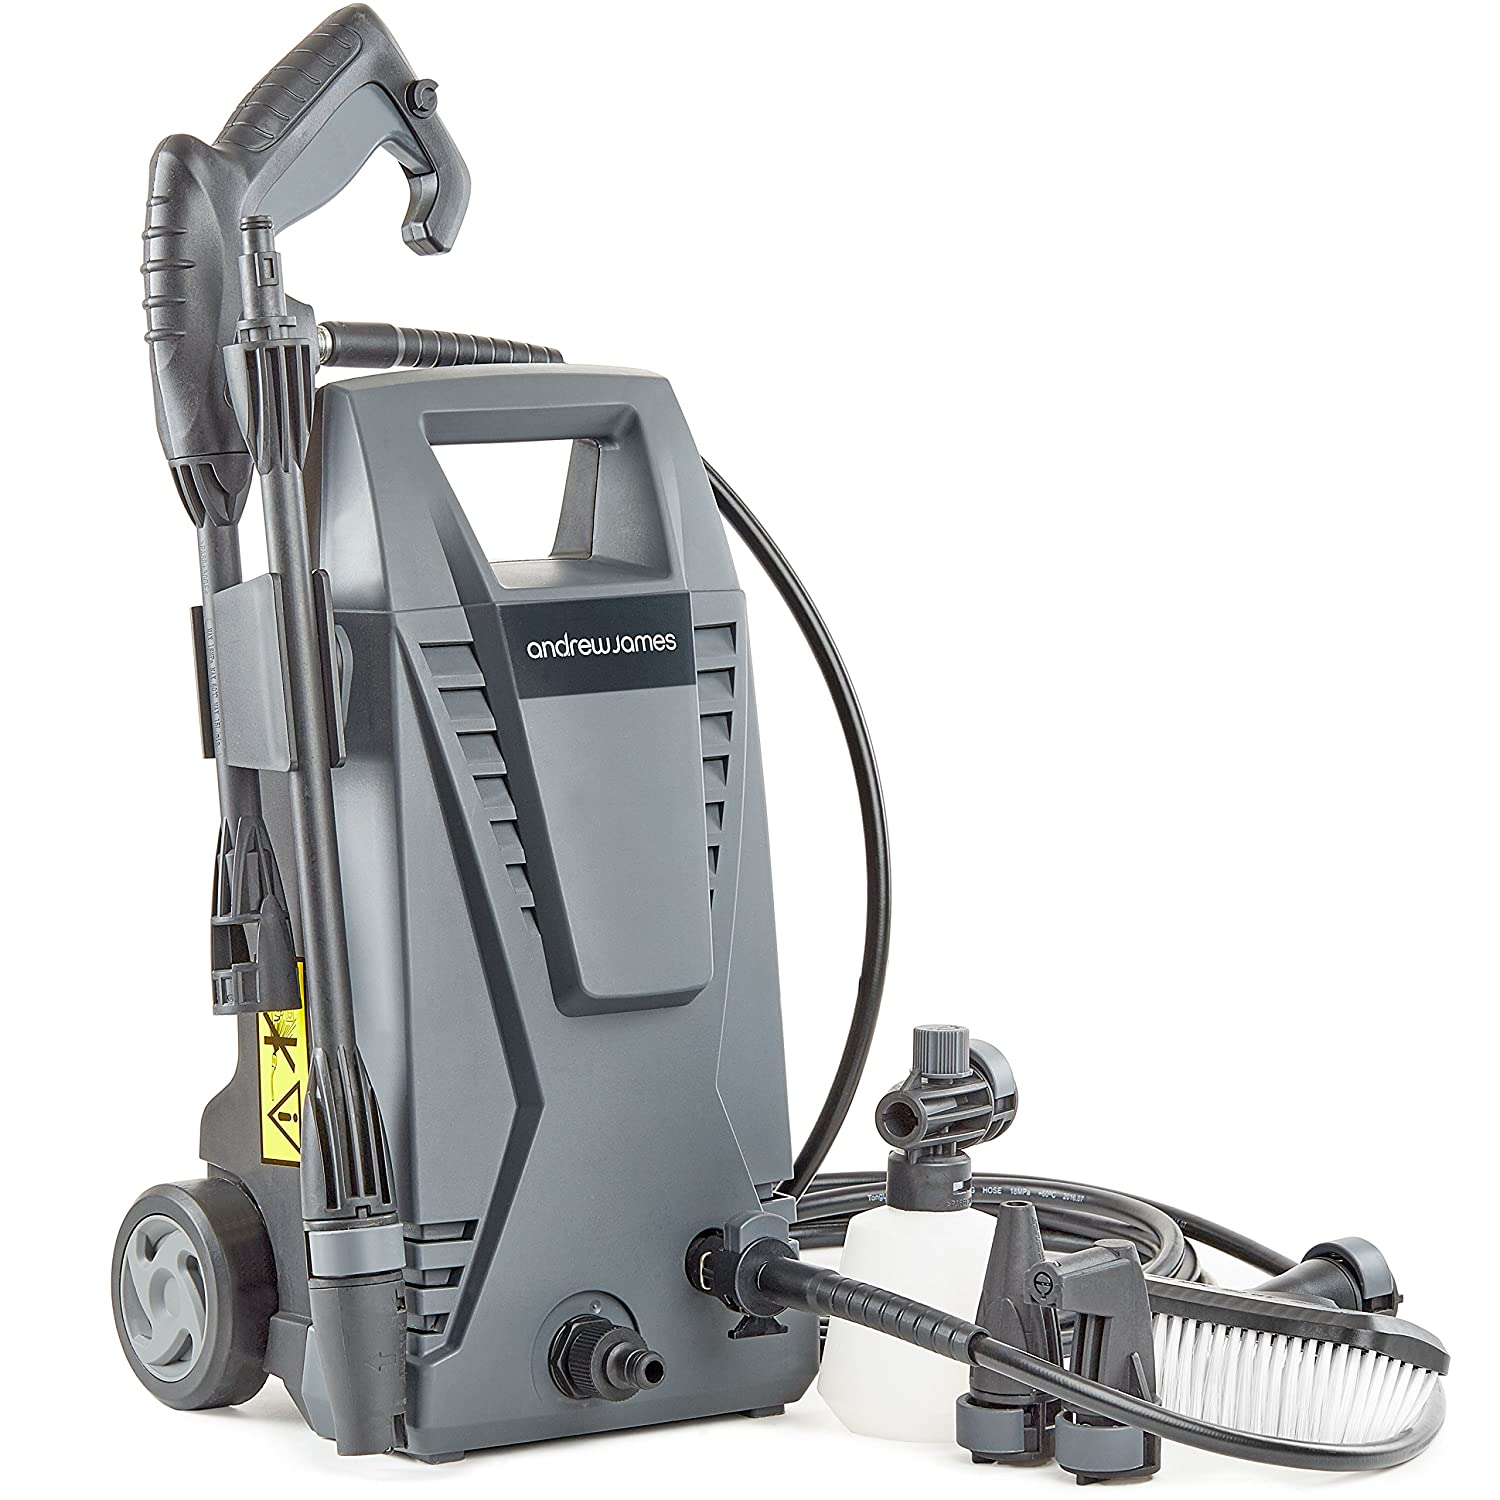 Andrew James Immacuclean Pressure Washer Portable Jet Wash |105 Bar Pressure 330 Litres Per Hour 6m Hose & 5m Cable | Accessories Including Nozzles Brush & Detergent Bottle